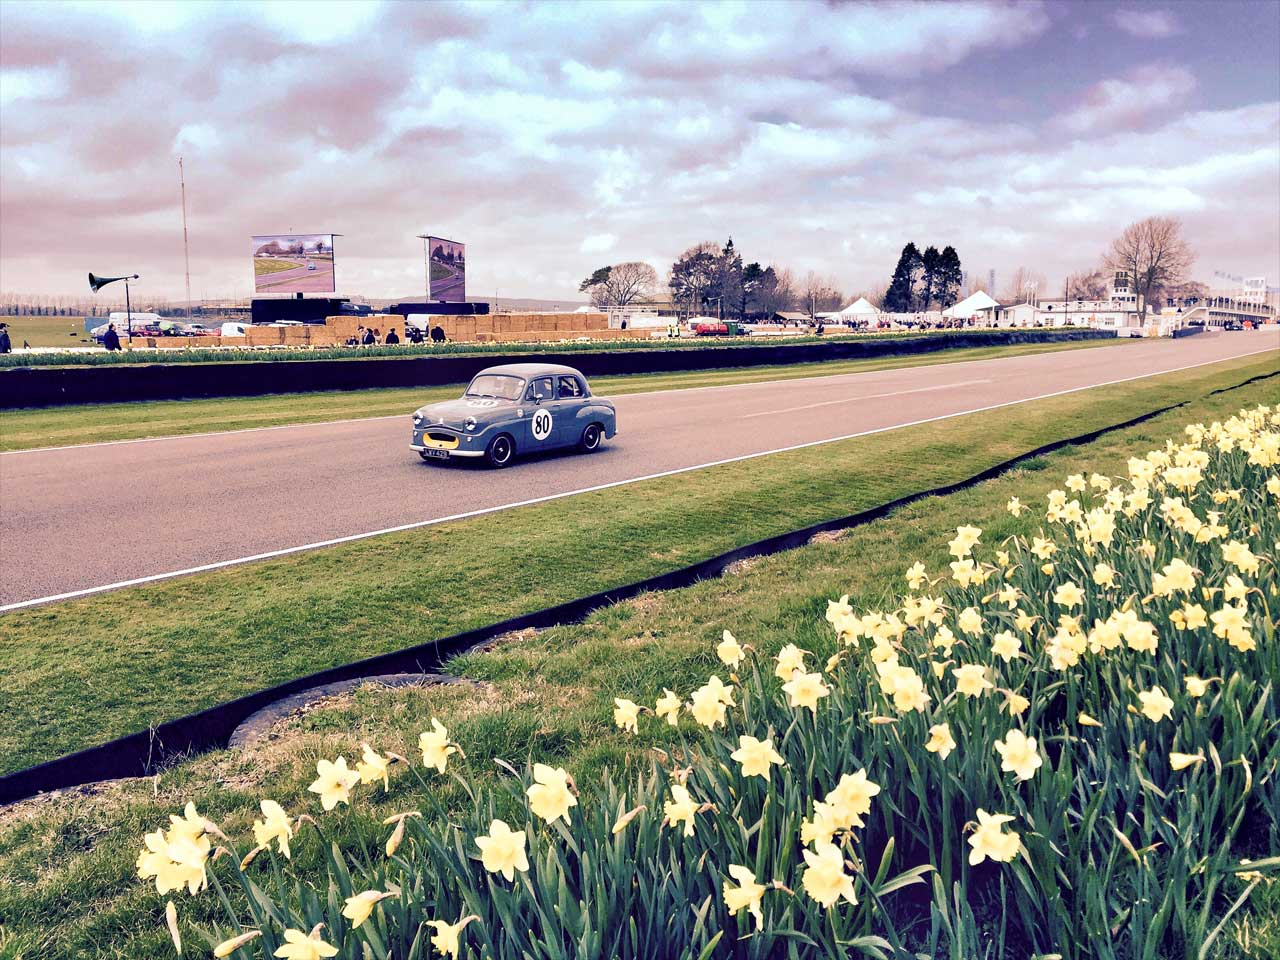 iPhone photo of a car at Goodwood